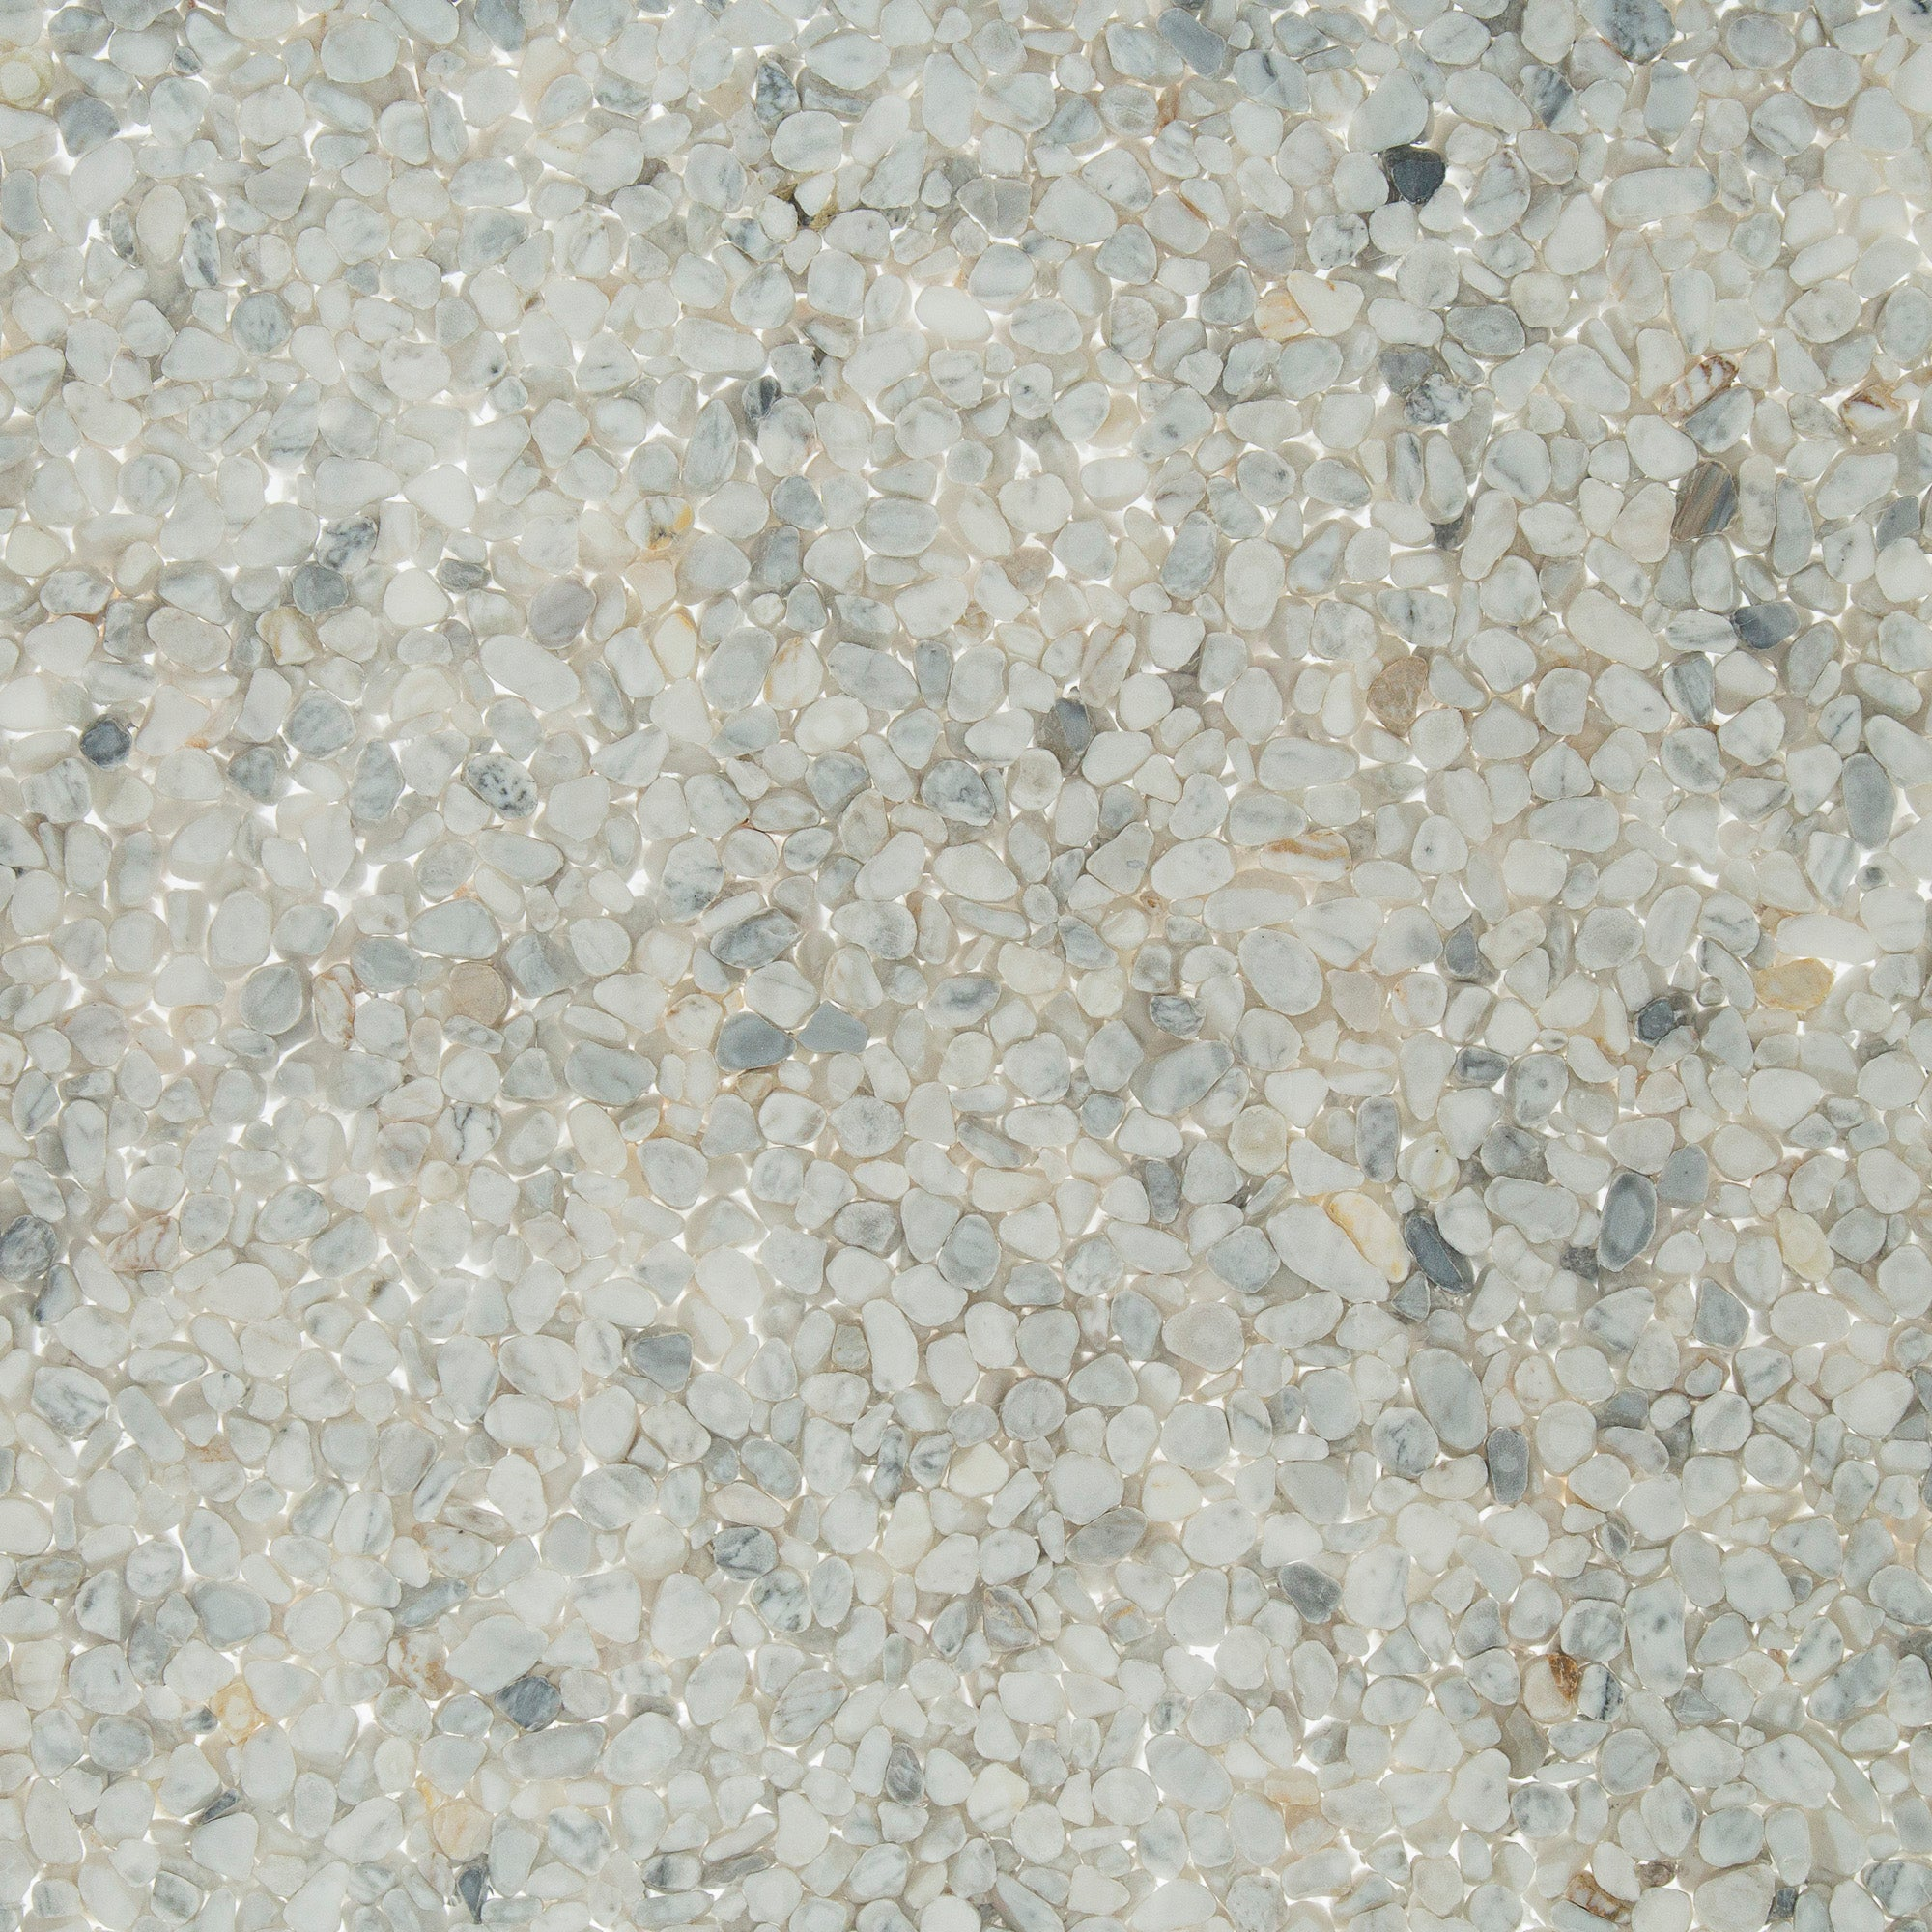 Riverstone Bianco Carrara Field Tile product photo